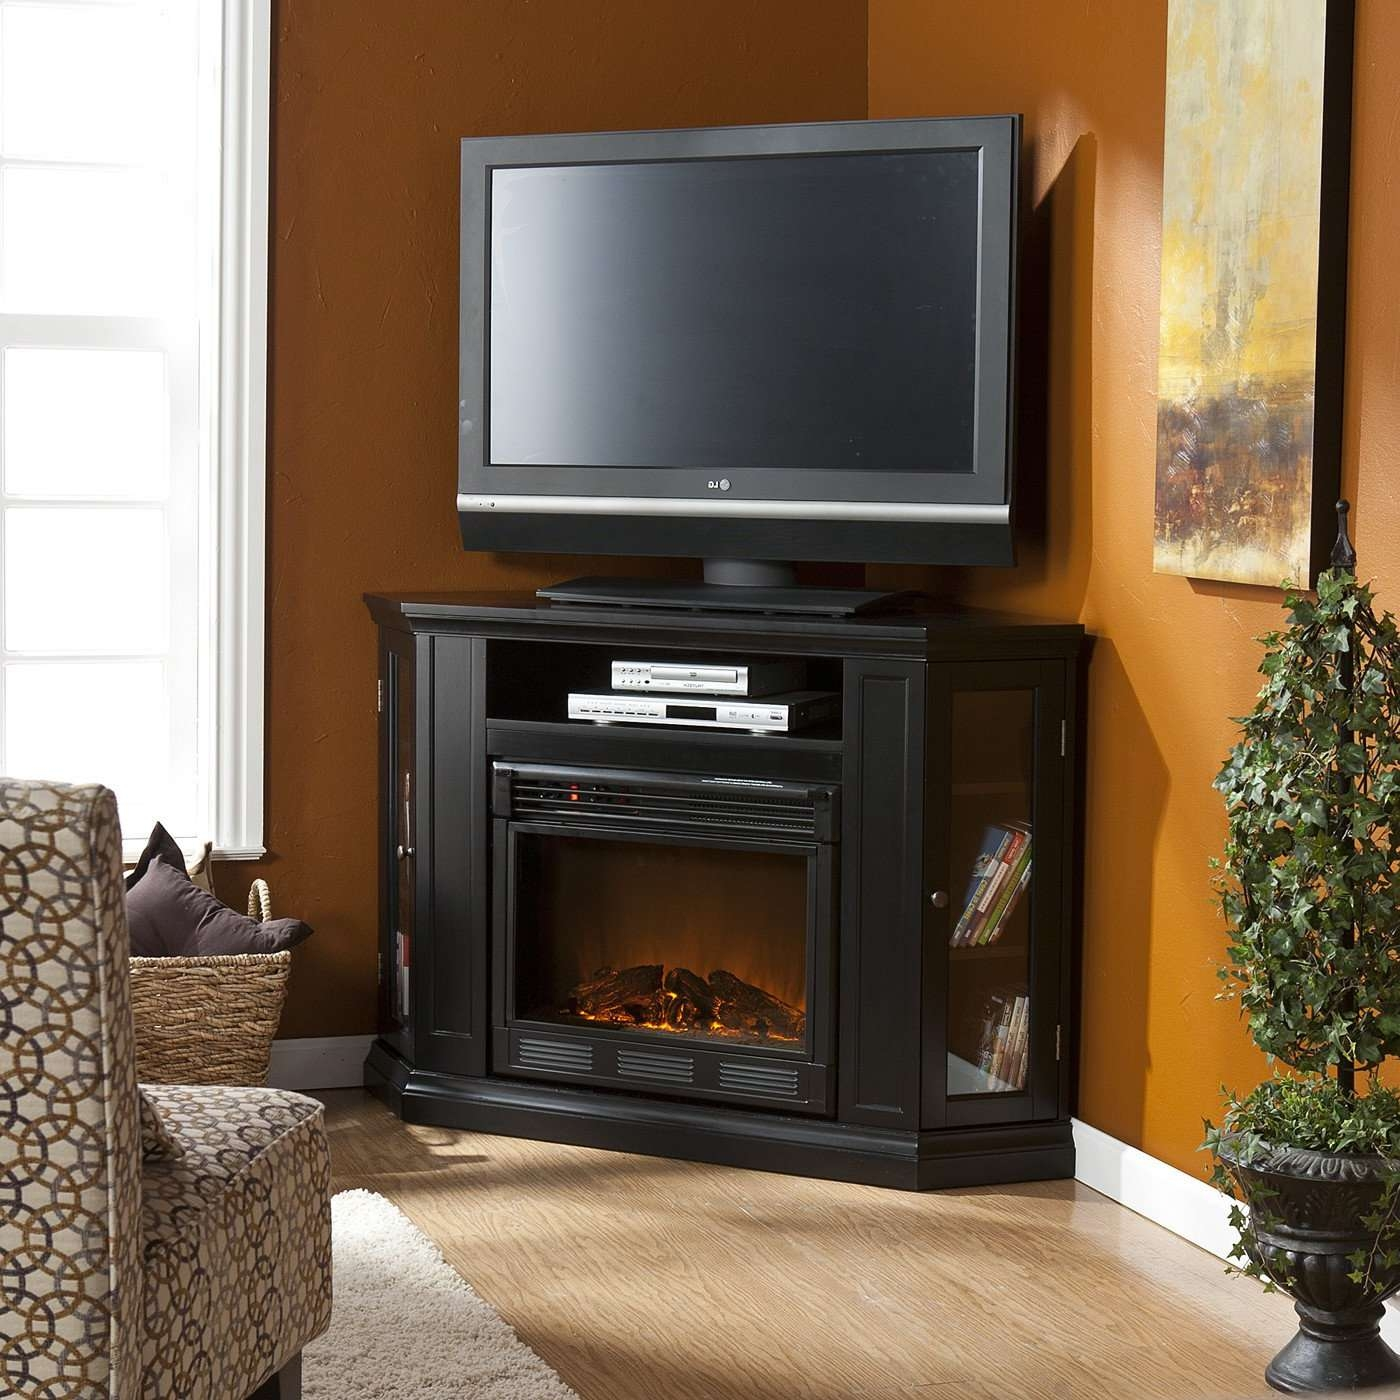 20 Cool Tv Stand Designs For Your Home With Cool Tv Stands (View 1 of 15)